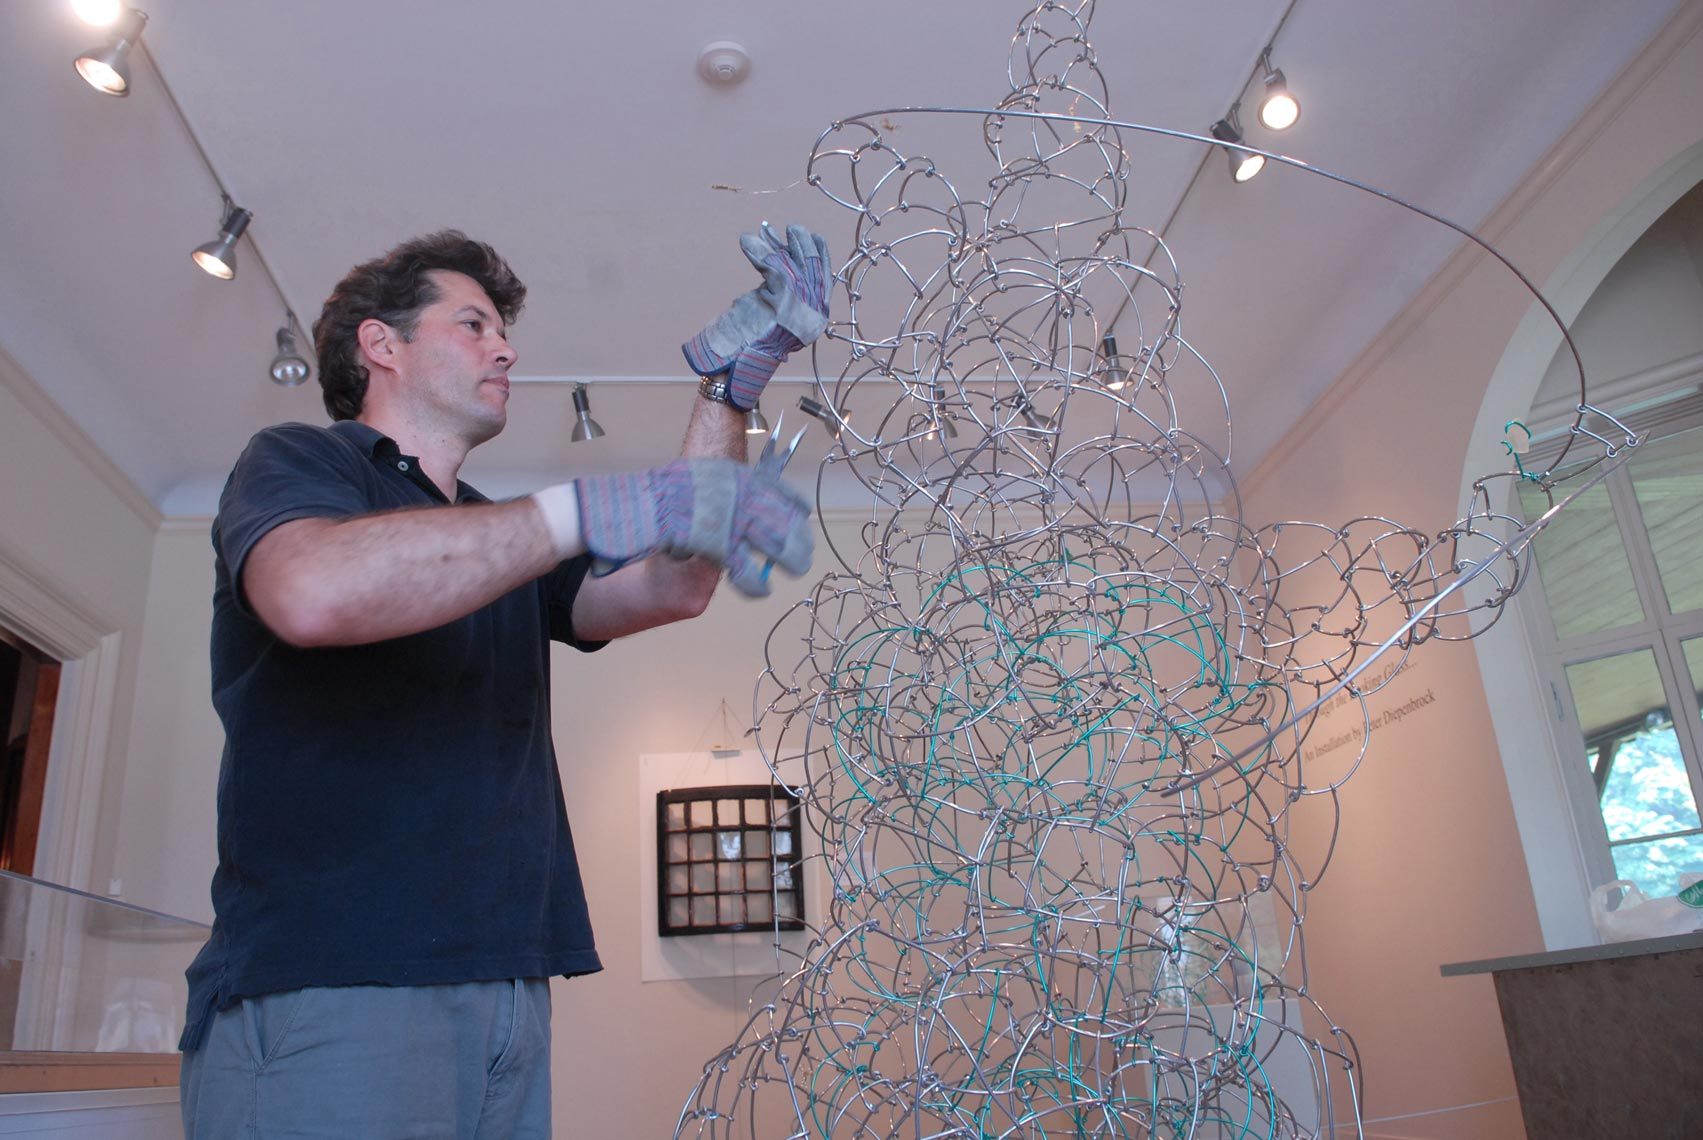 Peter Diepenbrock working at The Newport Art Museum